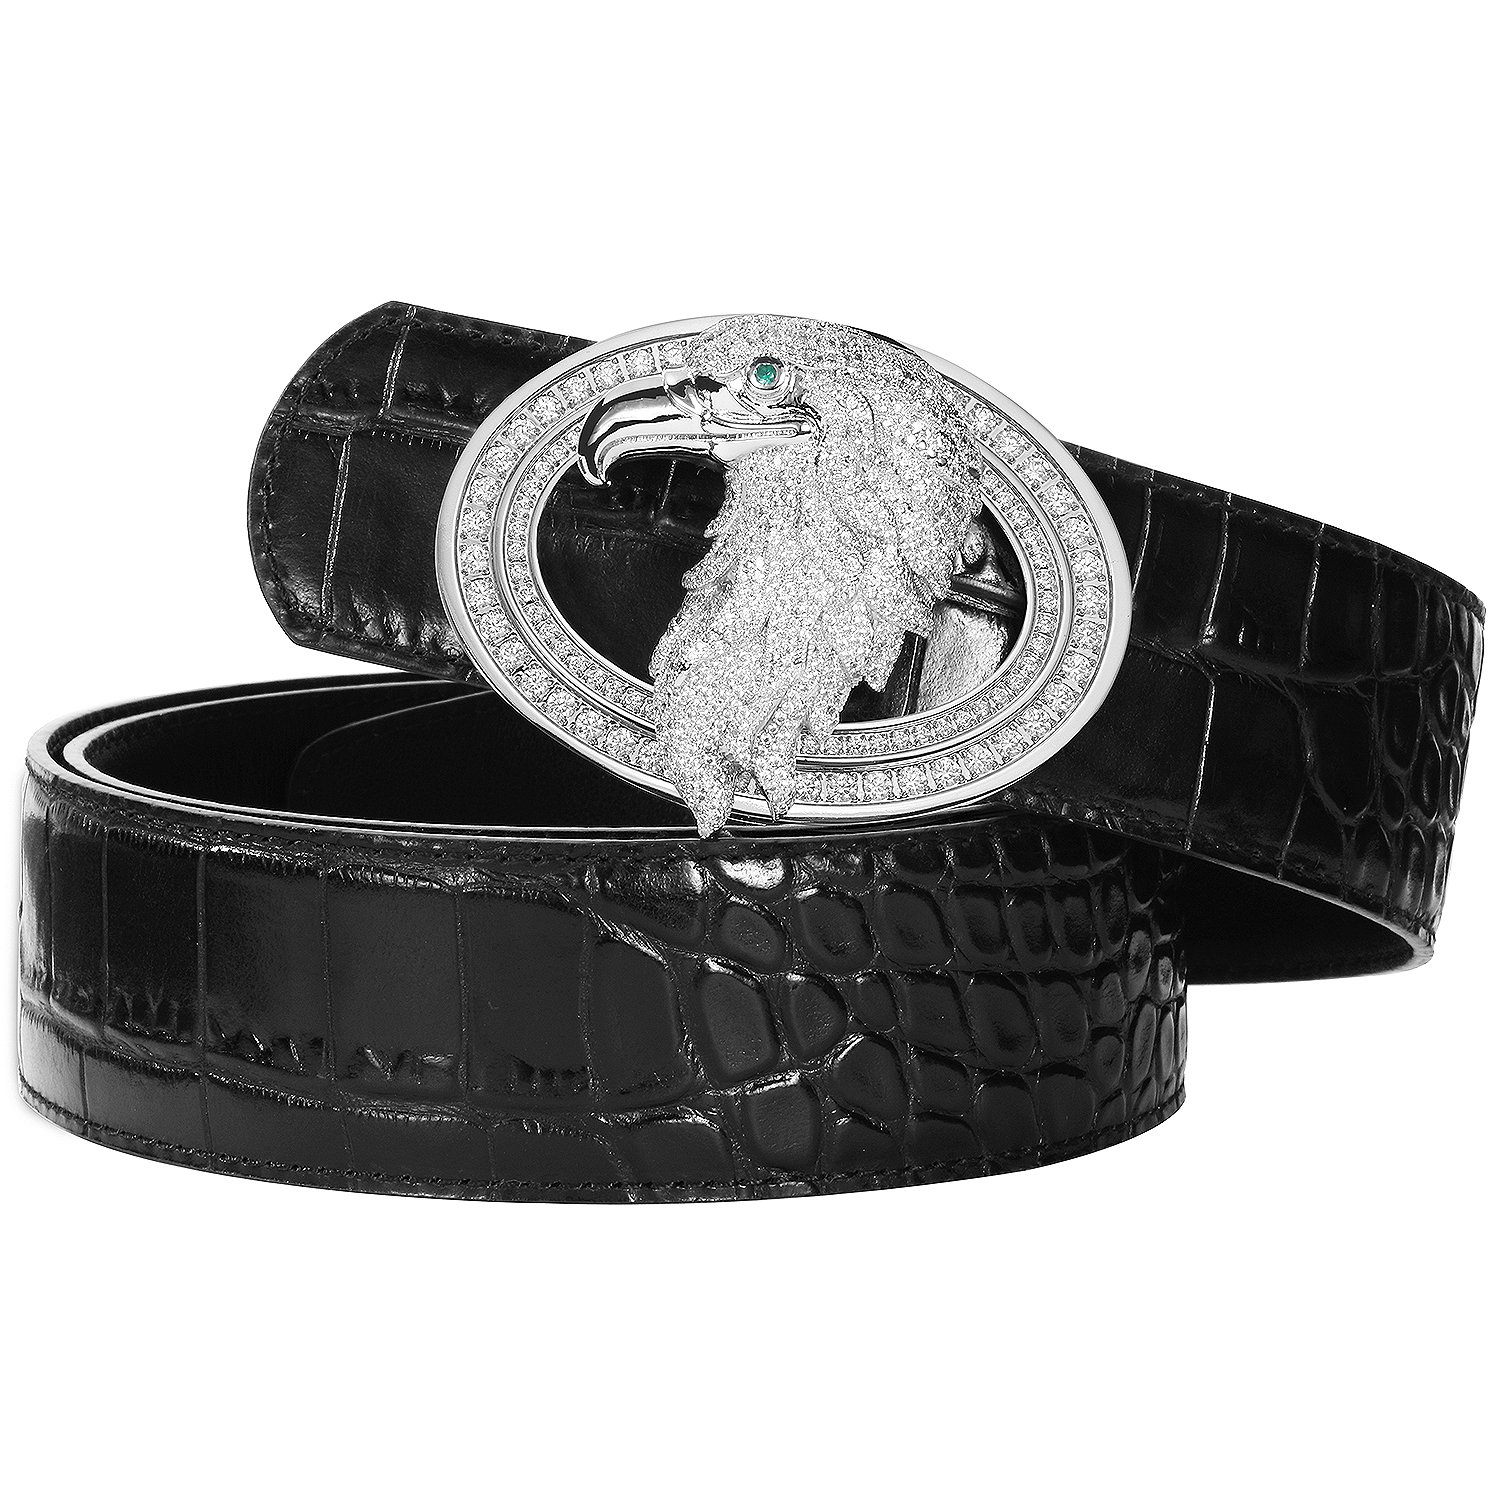 Men's Belts Luxury Genuine Leather Black Dress Belt for Men Alligator Pattern Eagle Plaque Buckle